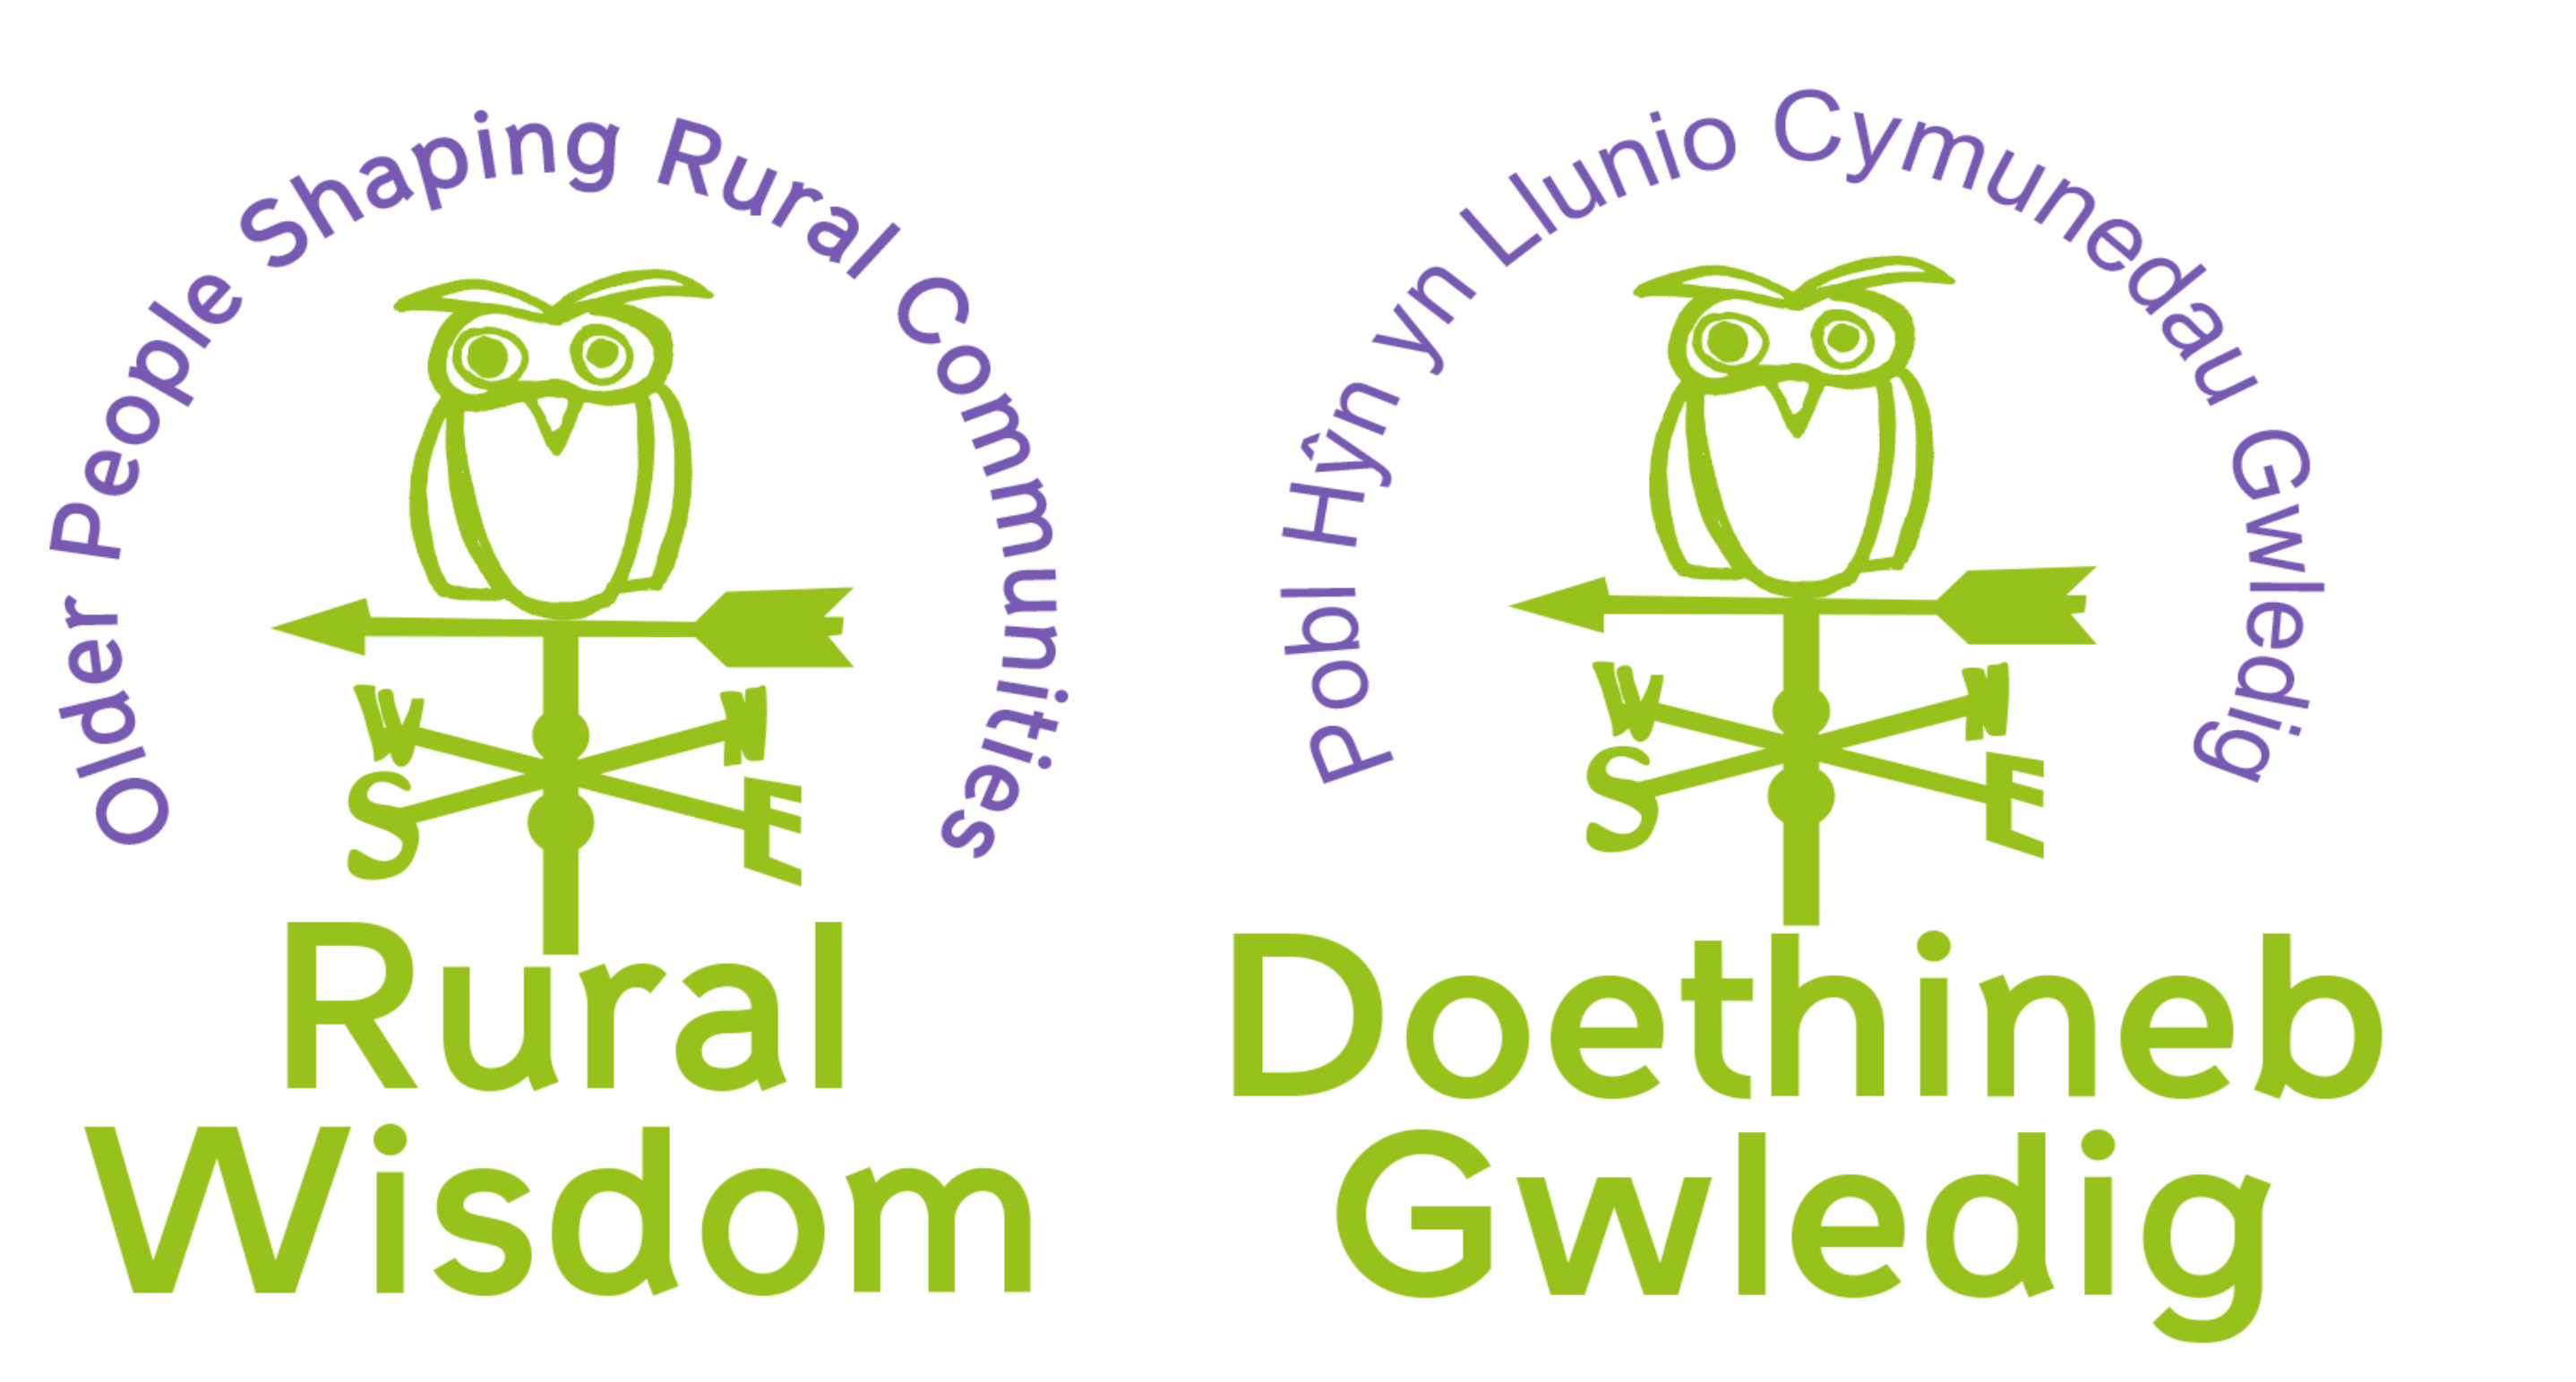 Rural Wisdom logos English and Welsh